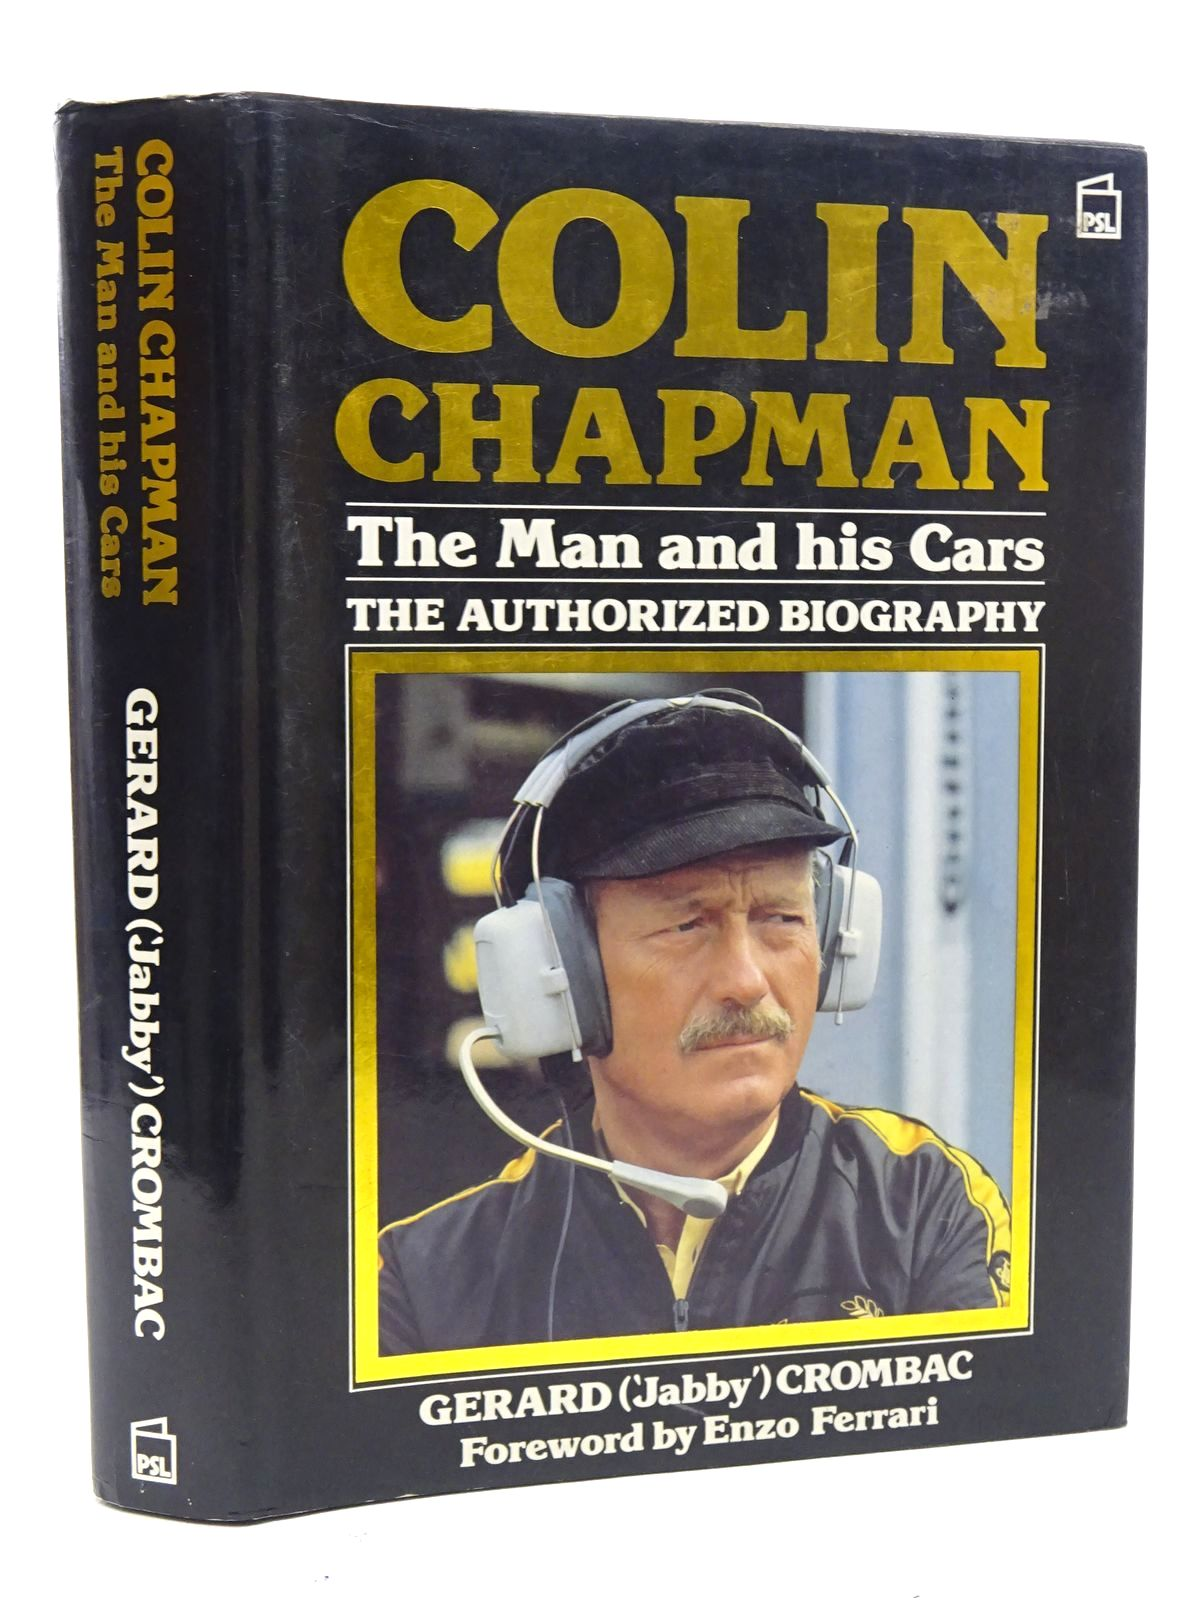 Photo of COLIN CHAPMAN THE MAN AND HIS CARS written by Crombac, Gerard published by Patrick Stephens (STOCK CODE: 1610546)  for sale by Stella & Rose's Books